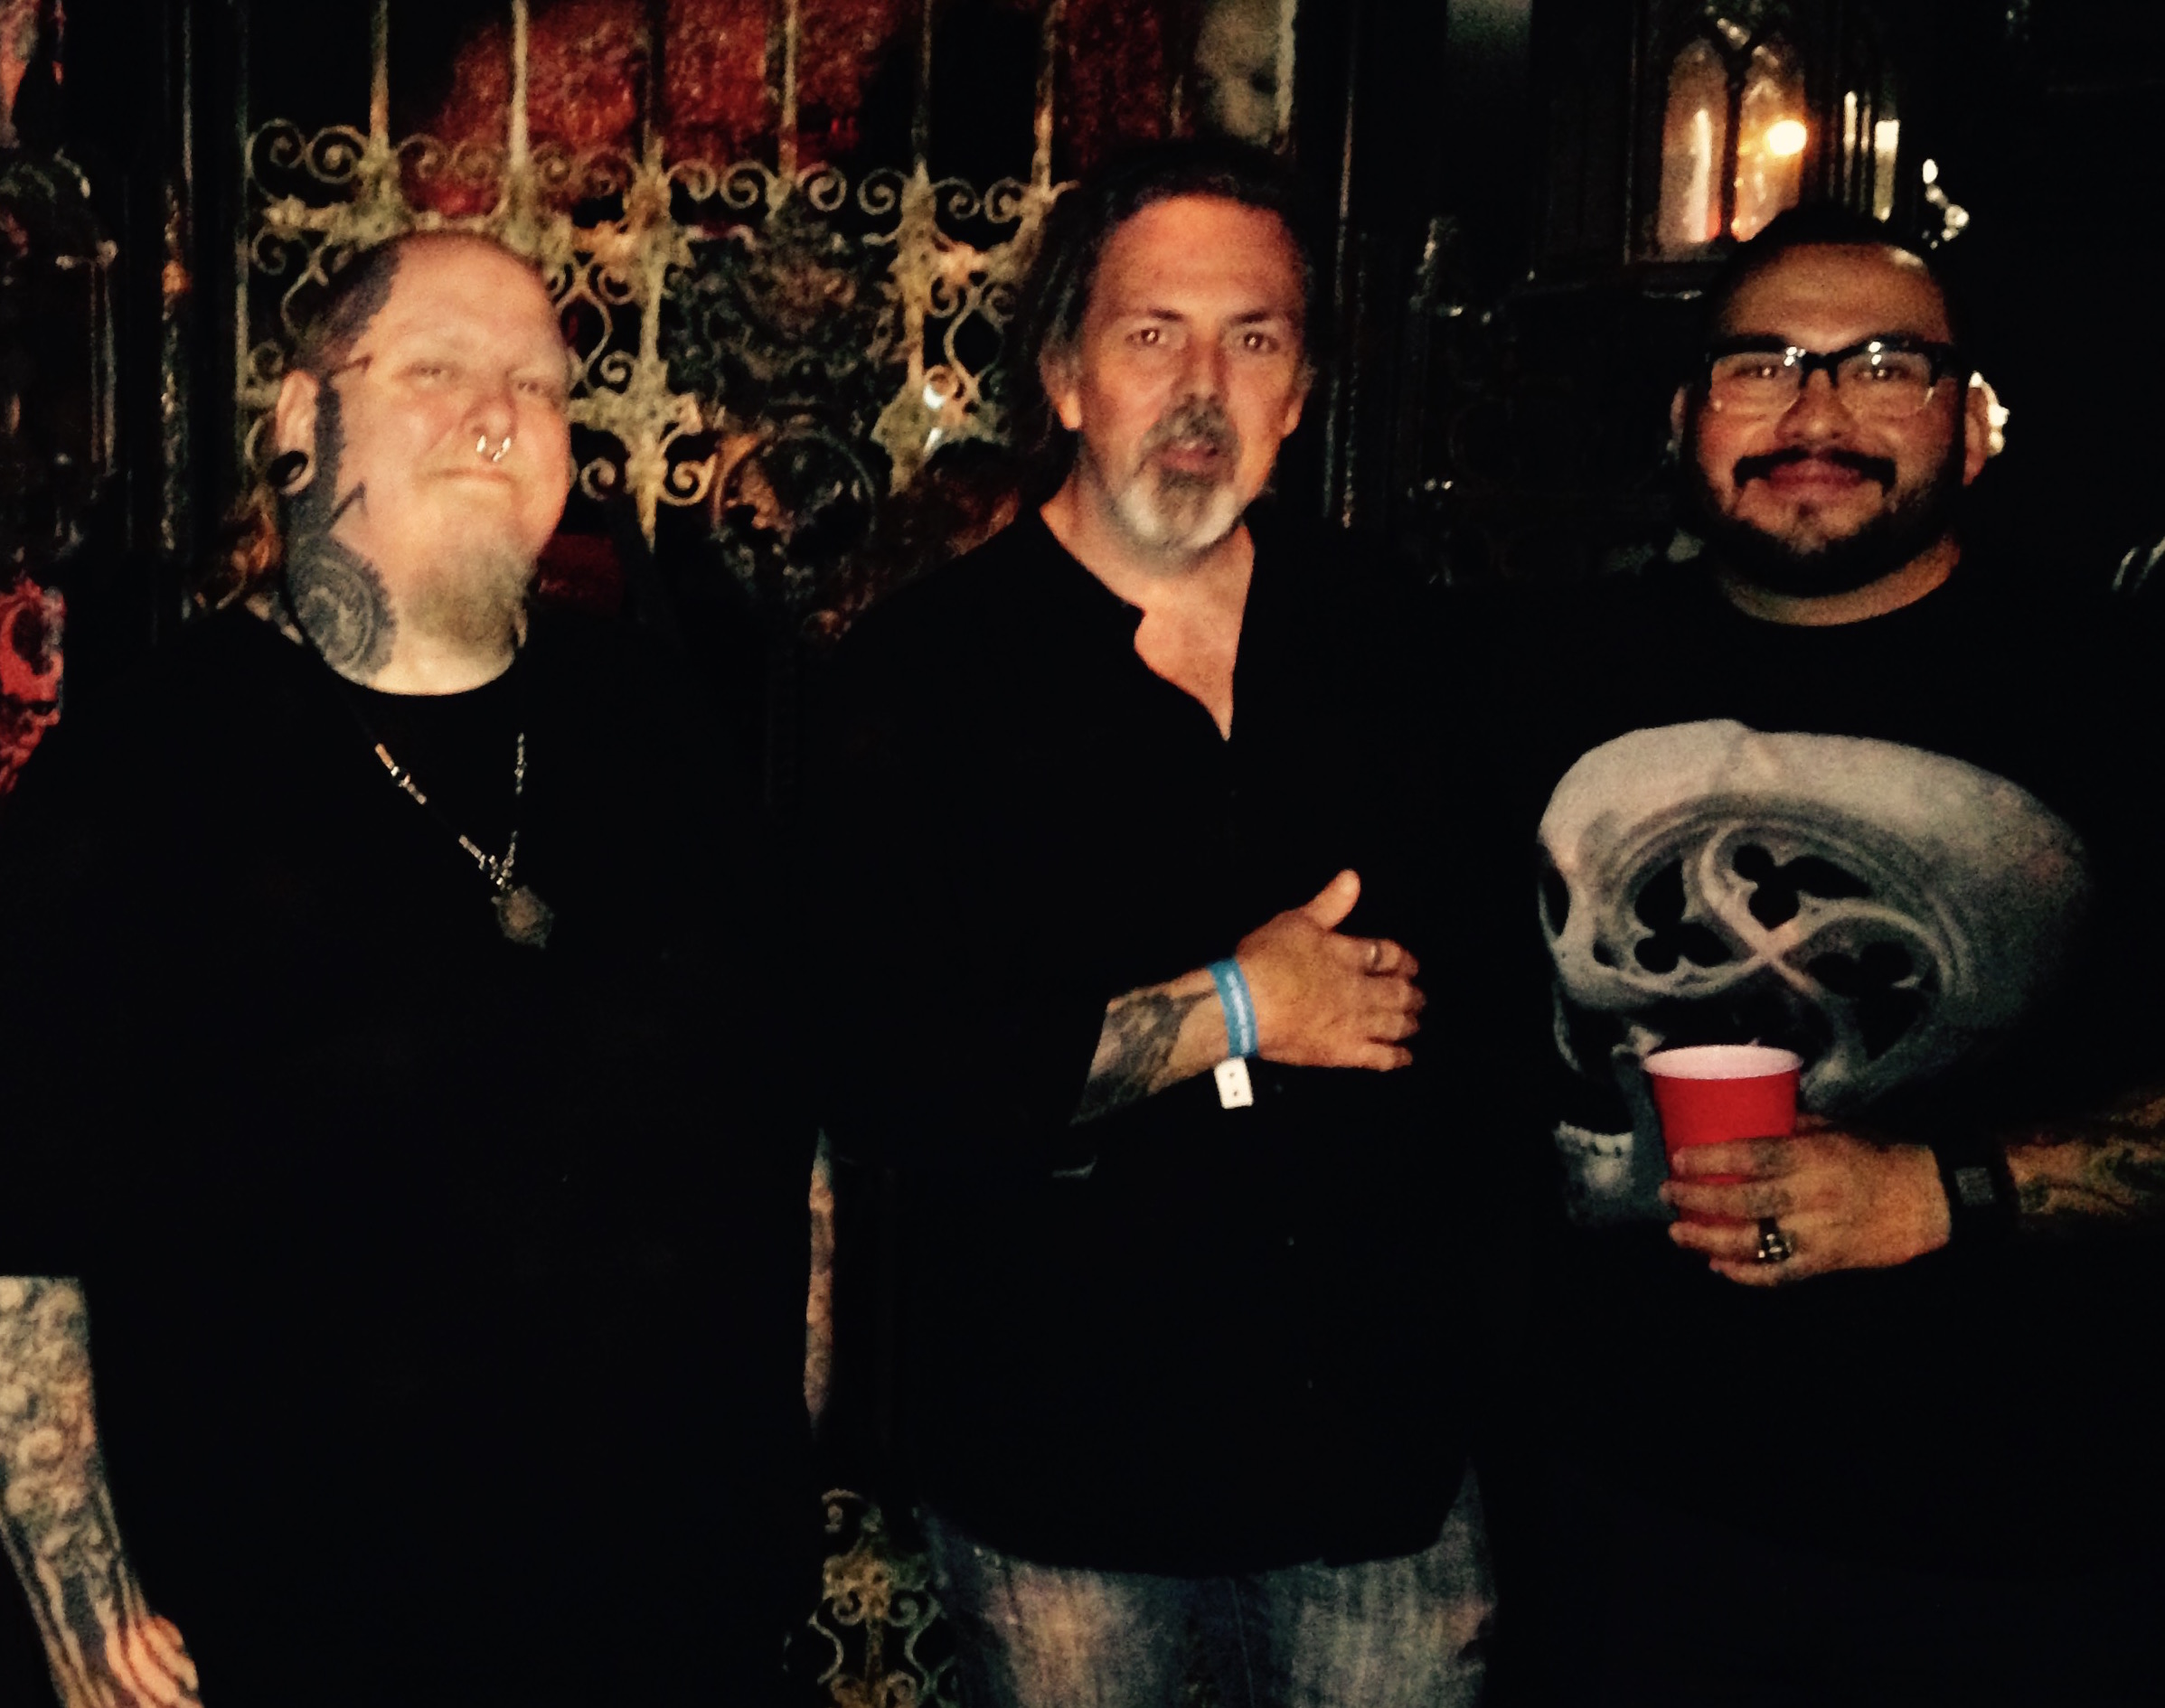 Paul Booth (left), Nikko Hurtado (right) and me. There's more black in this photo than I've ever seen. Good work darkness.